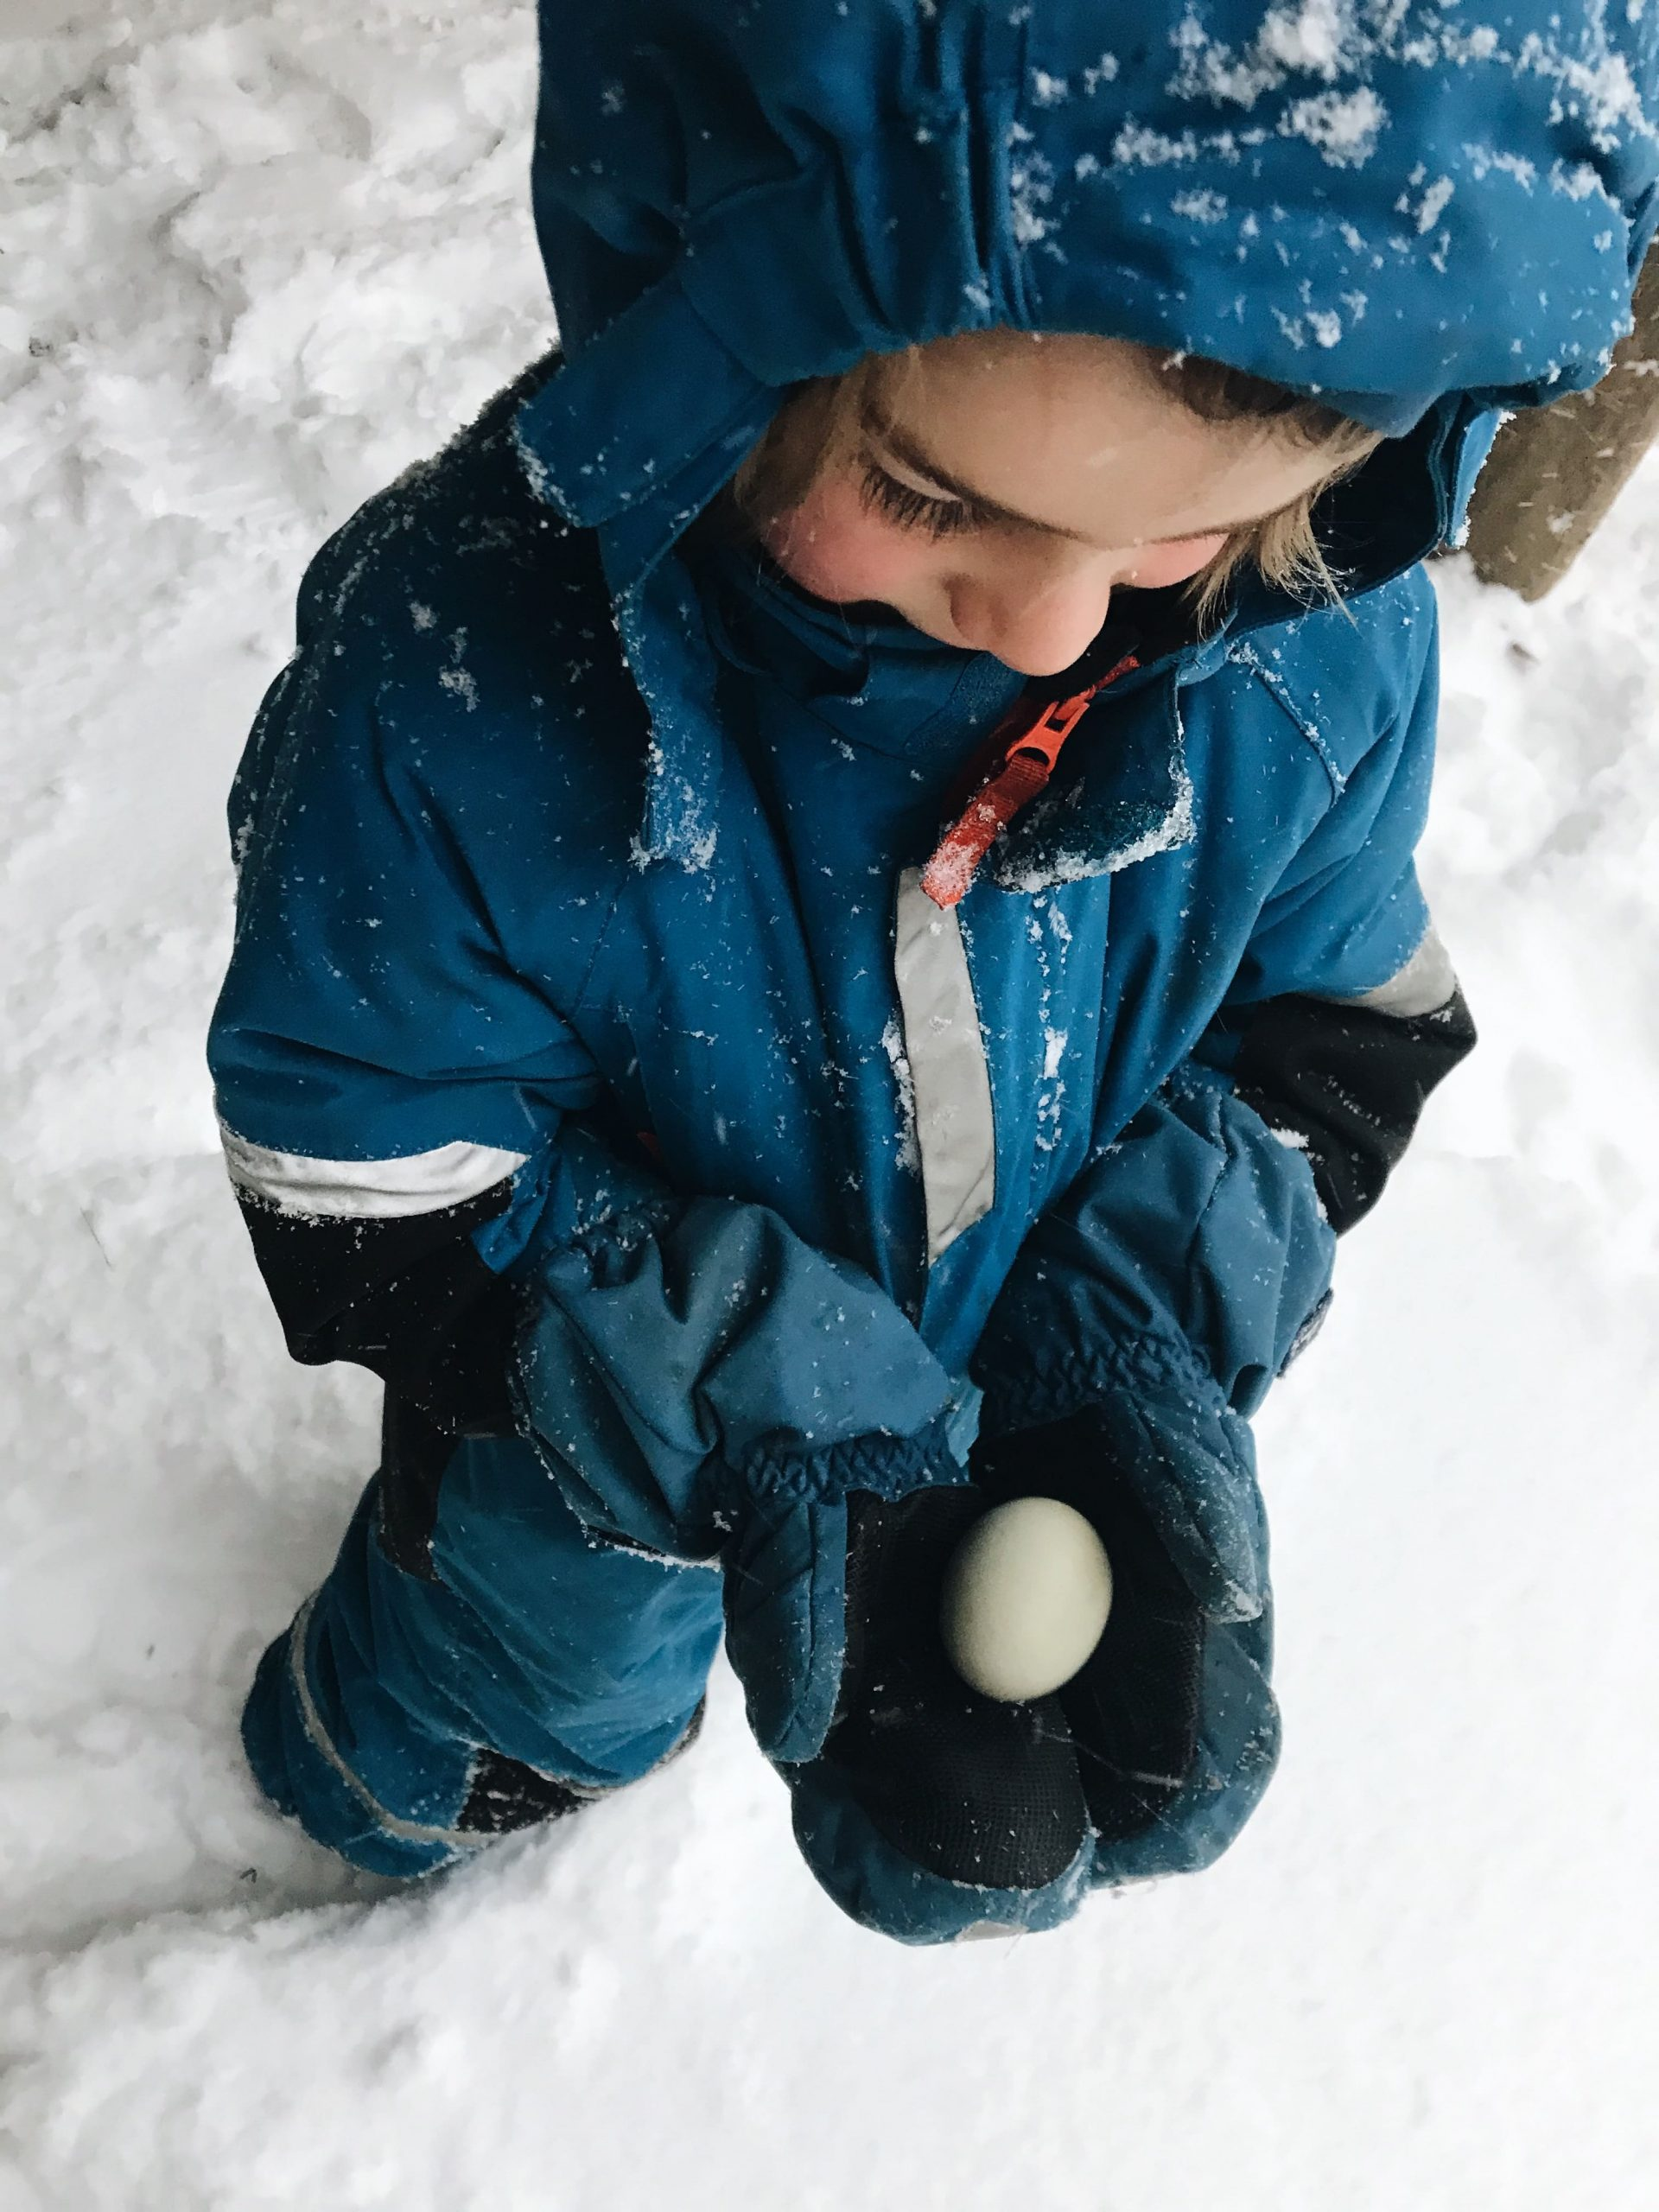 Little boy in snow with egg in hands